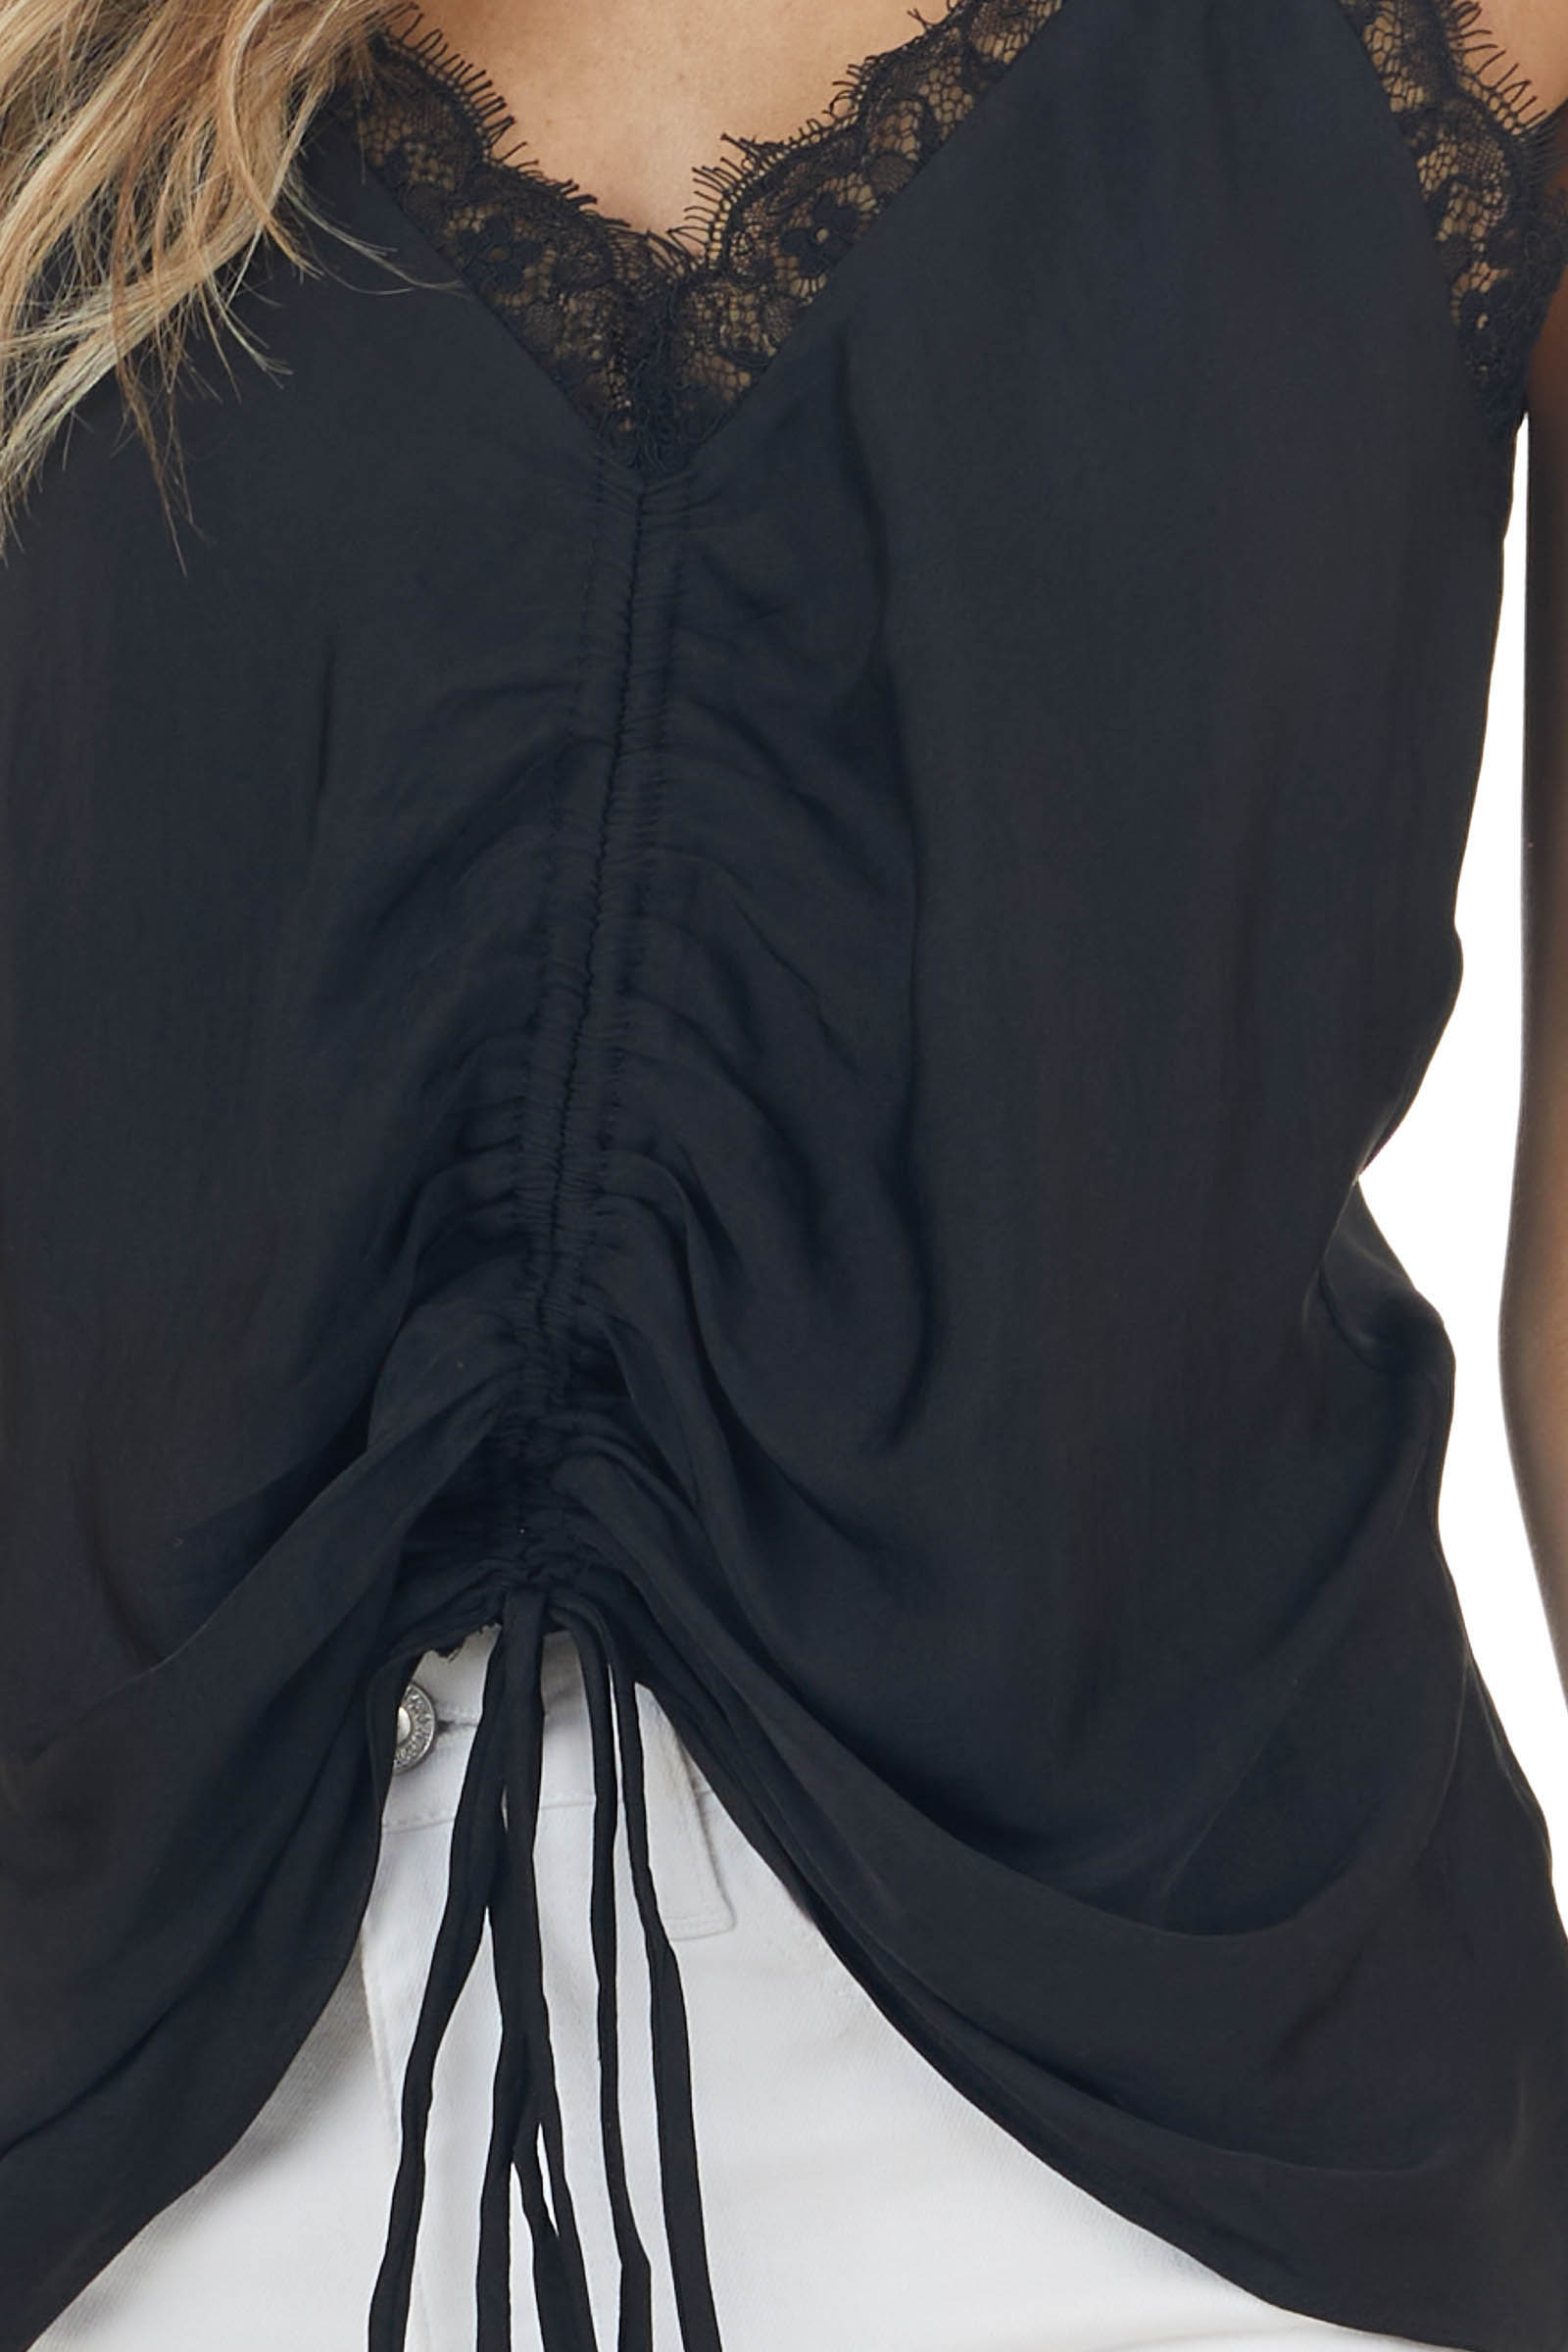 Black Sleeveless Ruched Camisole Blouse with Lace Neckline